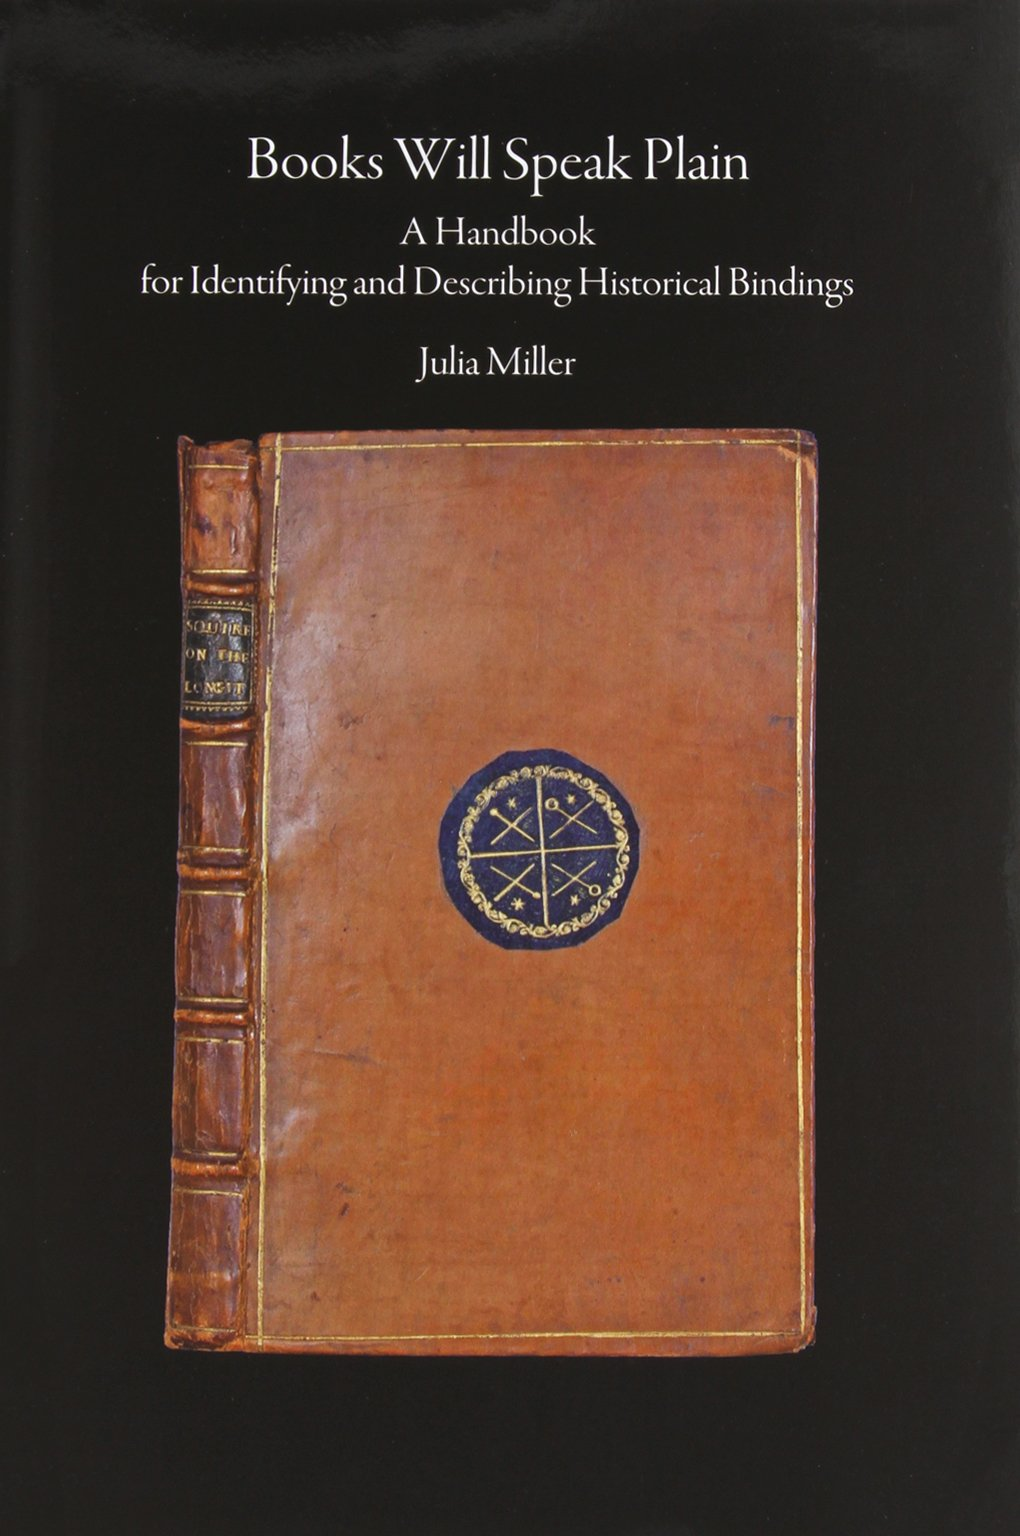 Books Will Speak Plain: A Handbook for Identifying and Describing Historical Bindings